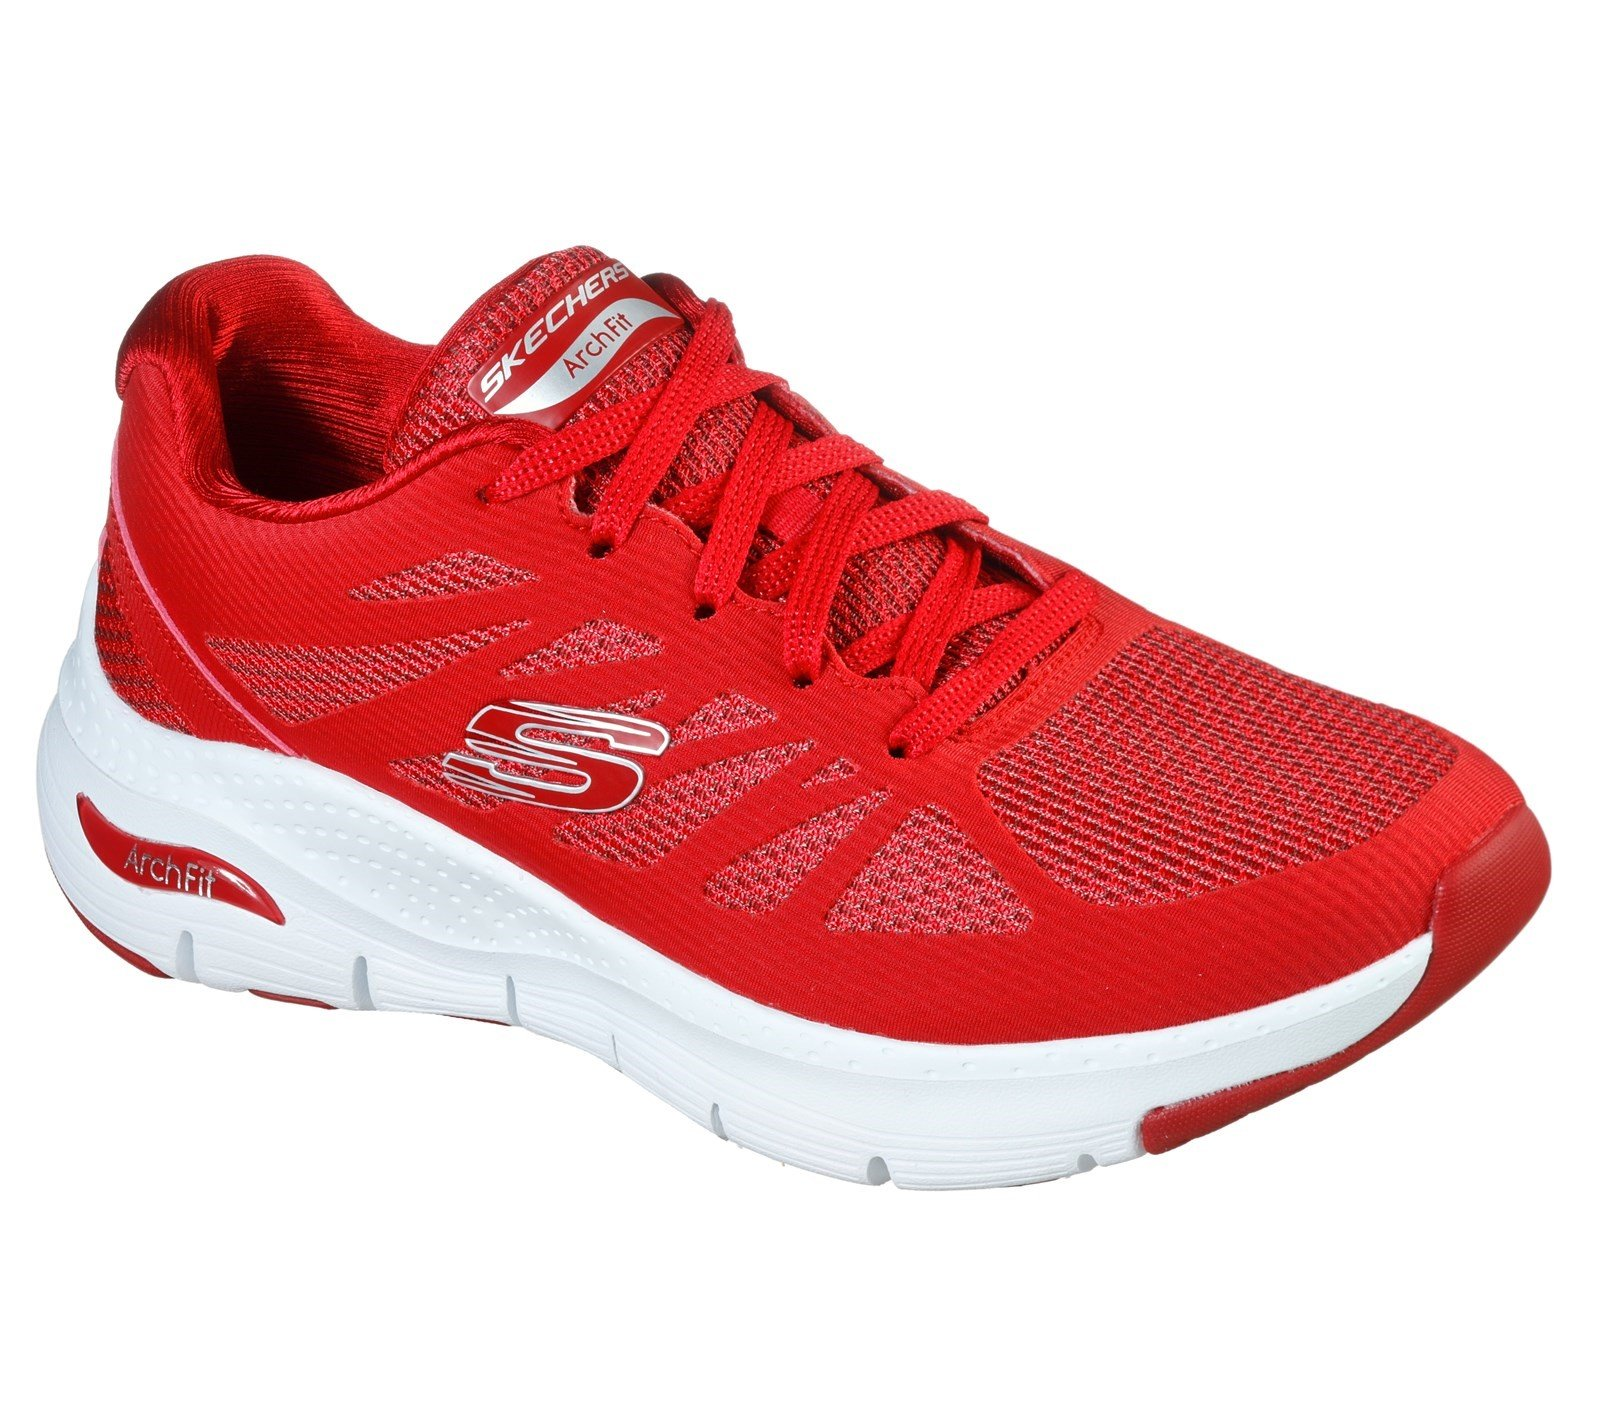 Skechers Women's Arch Fit Vivid Memory Sport Trainer Red 32840 - Red 3